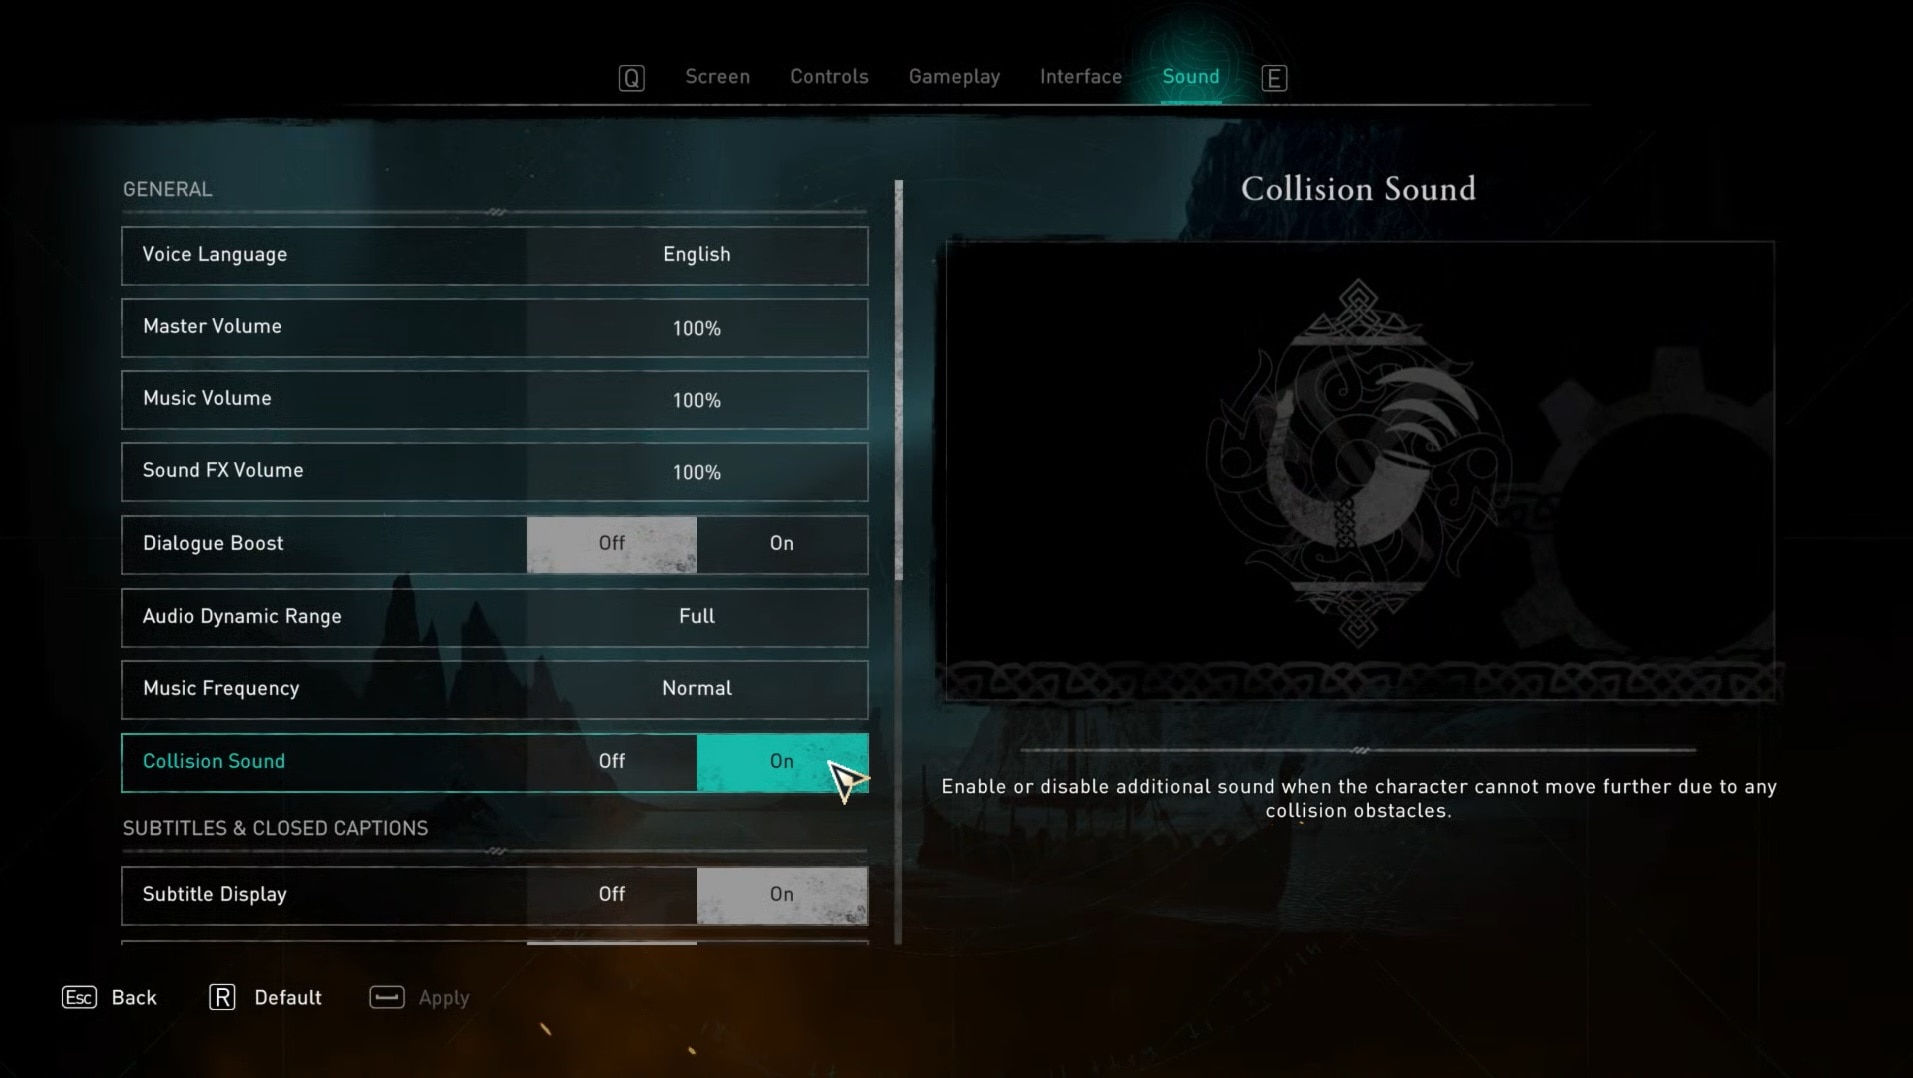 Collision sound in the in-game options